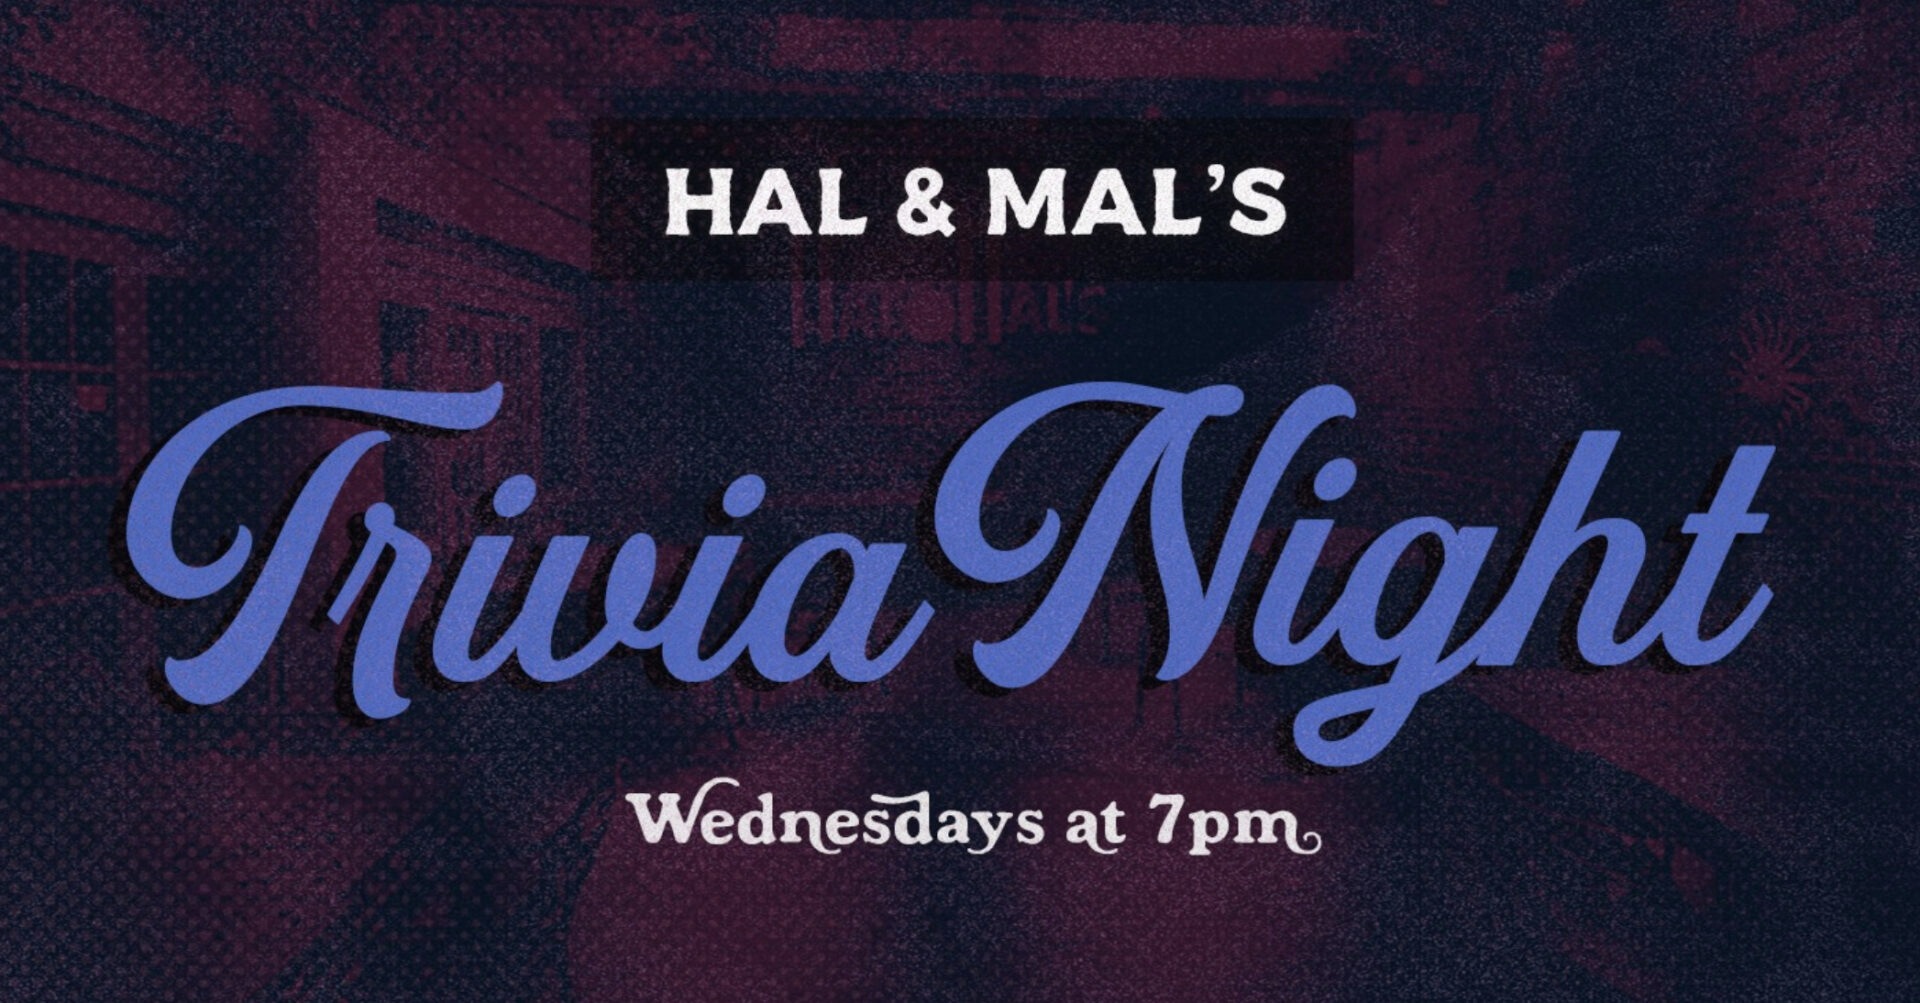 Trivia Night at Hal & Mal's